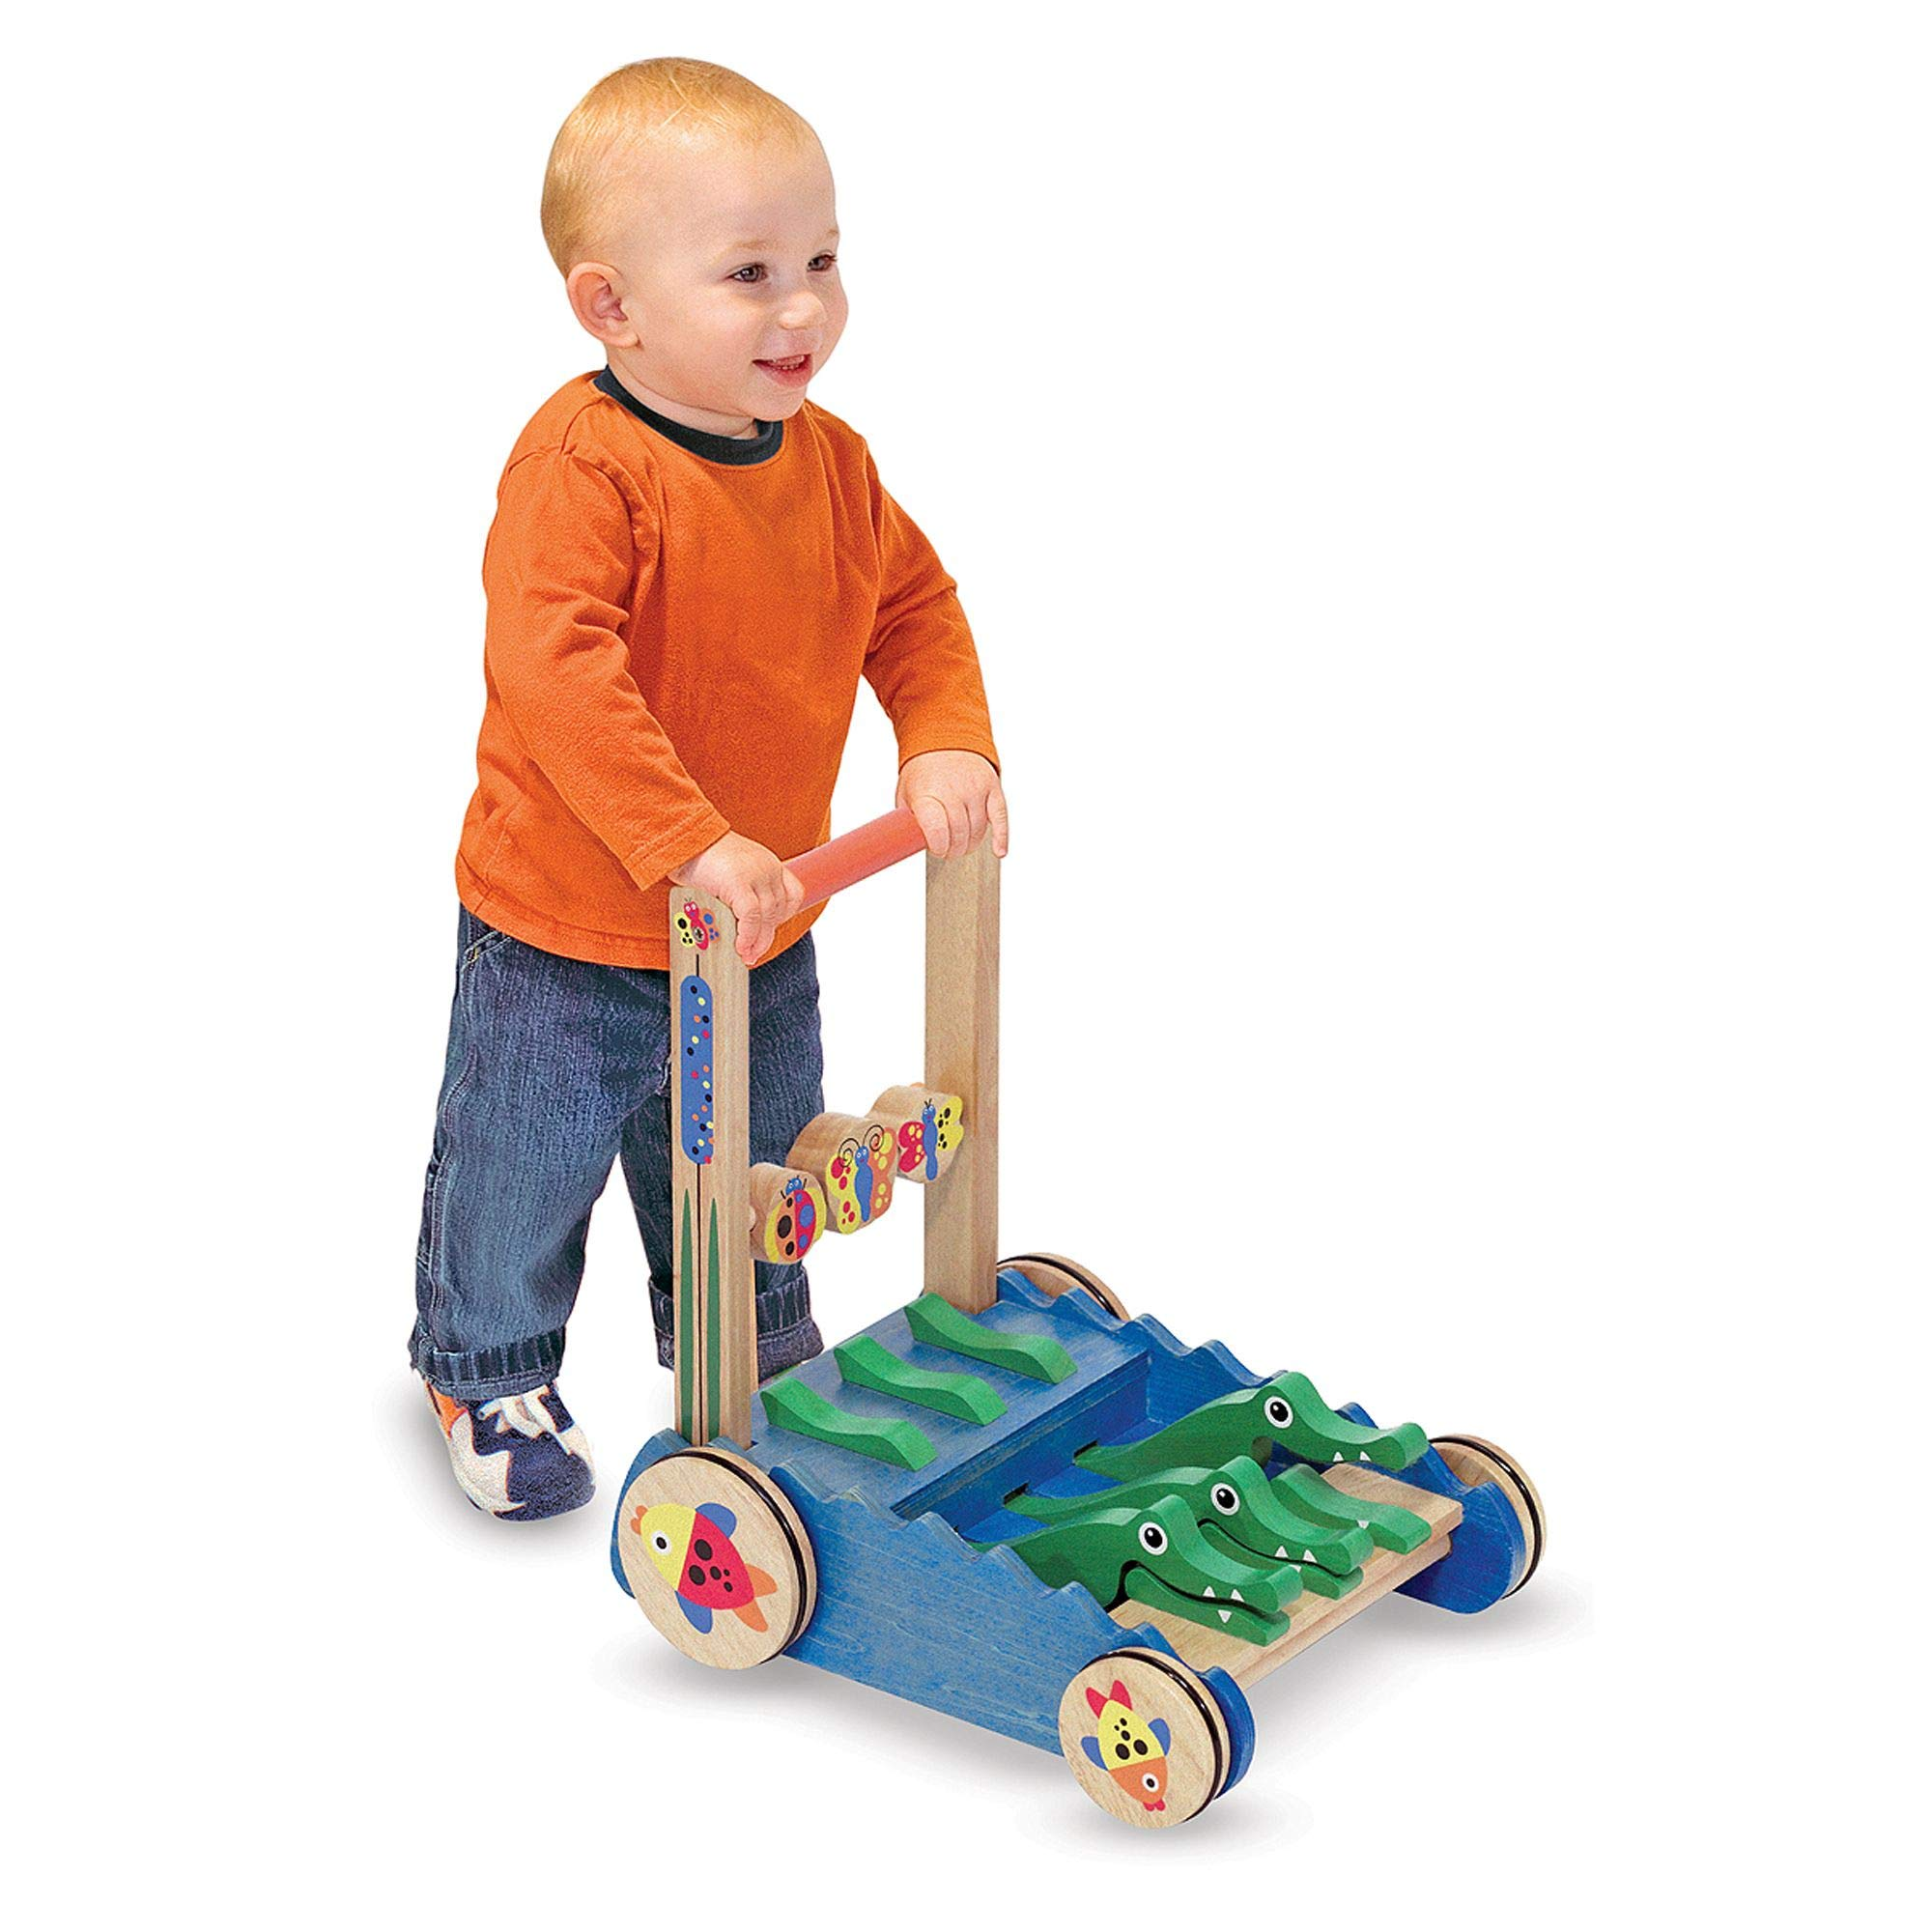 Melissa & Doug Deluxe Chomp and Clack Alligator Wooden Push Toy and Activity Walker by Melissa & Doug (Image #2)